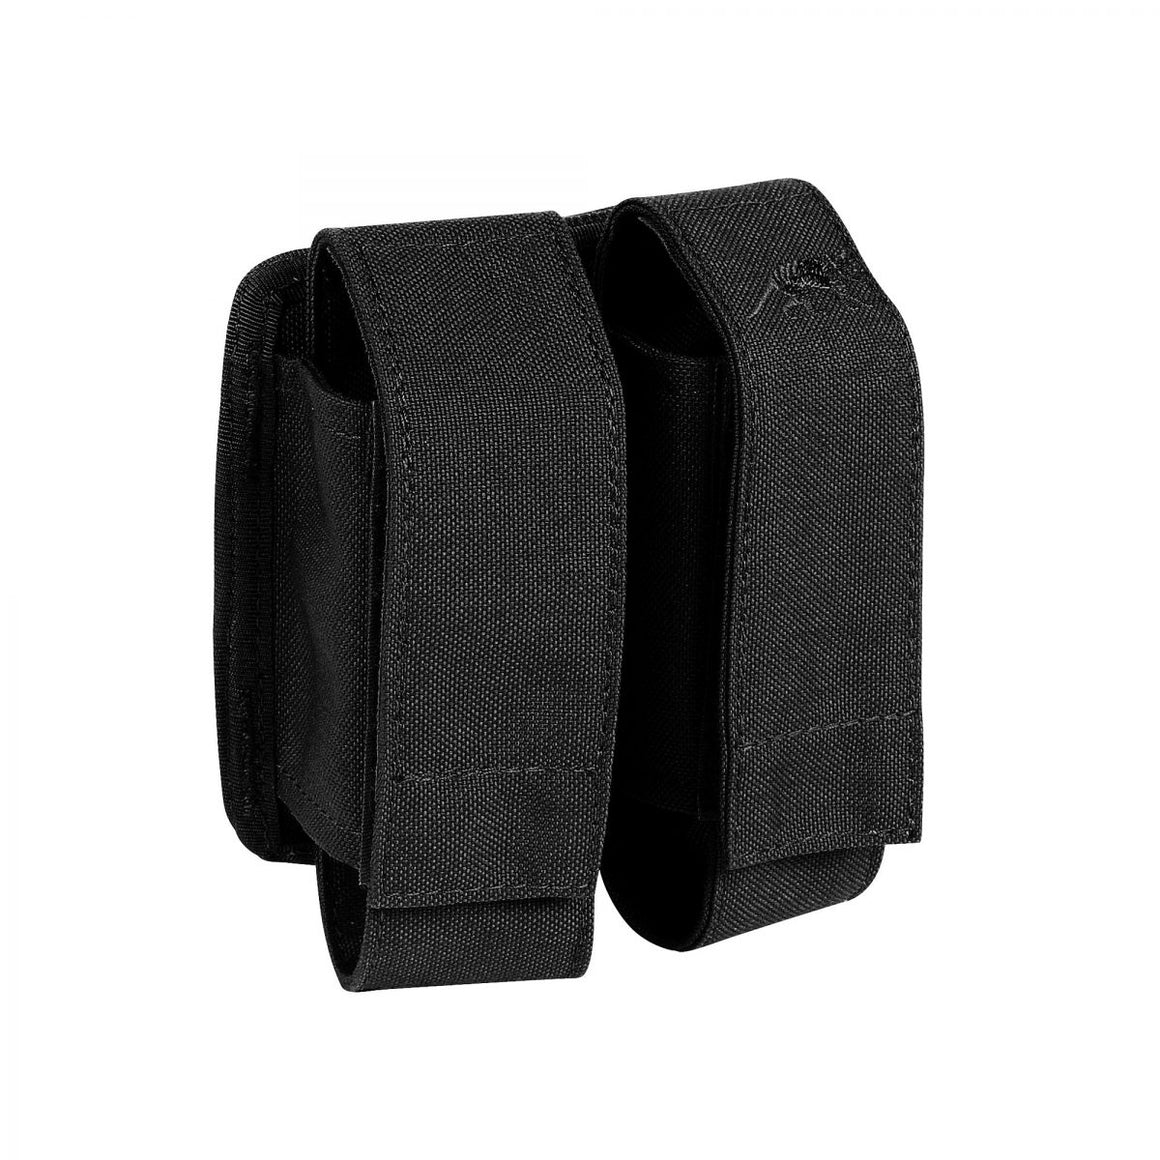 TT Mil Pouch 2 x 40mm Pouch ,utility,magazine, M203, Flash Bang